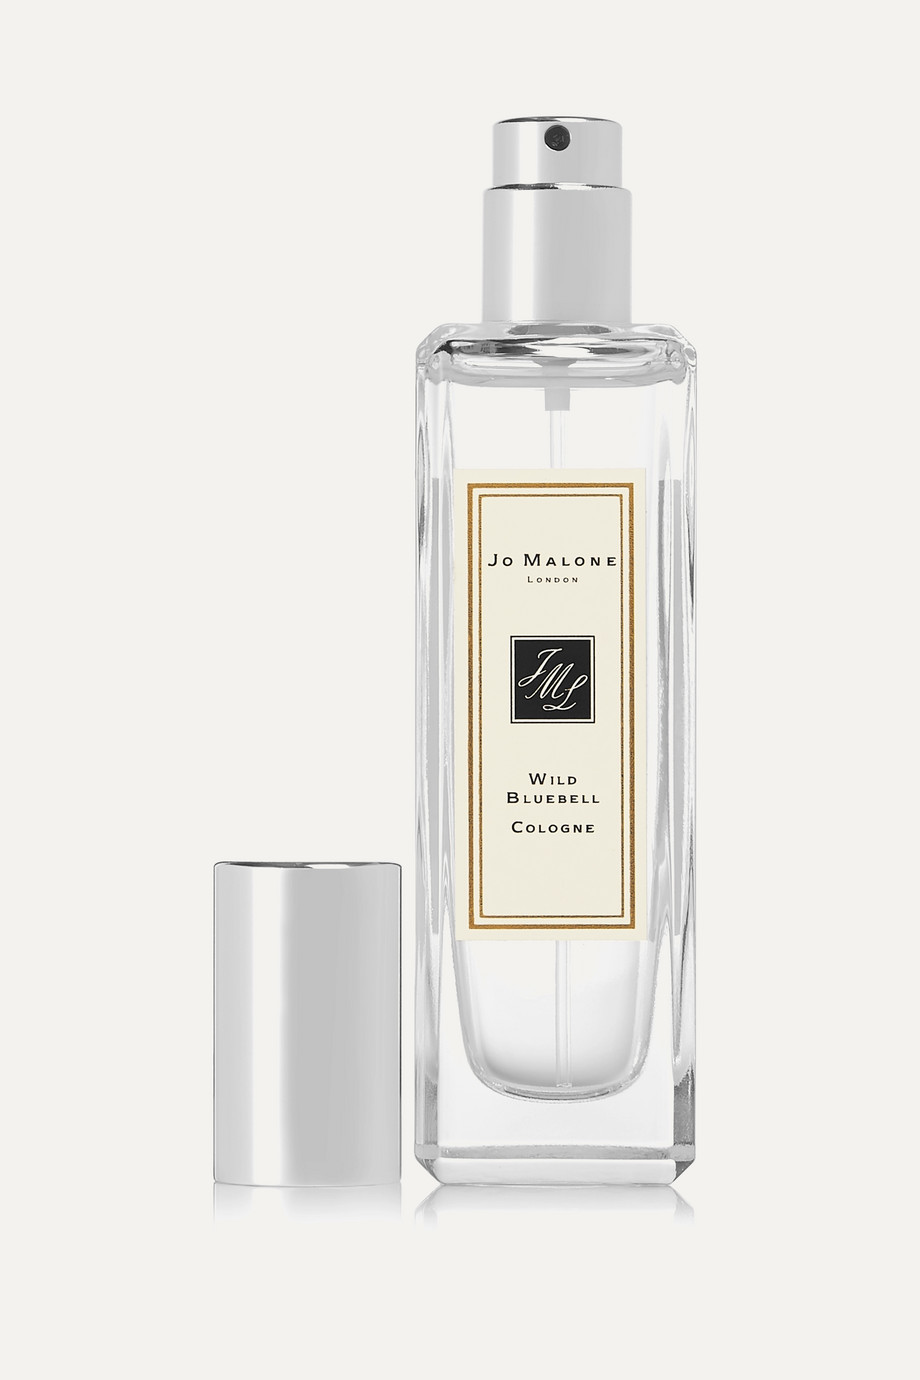 Jo Malone London Wild Bluebell Cologne, 30ml